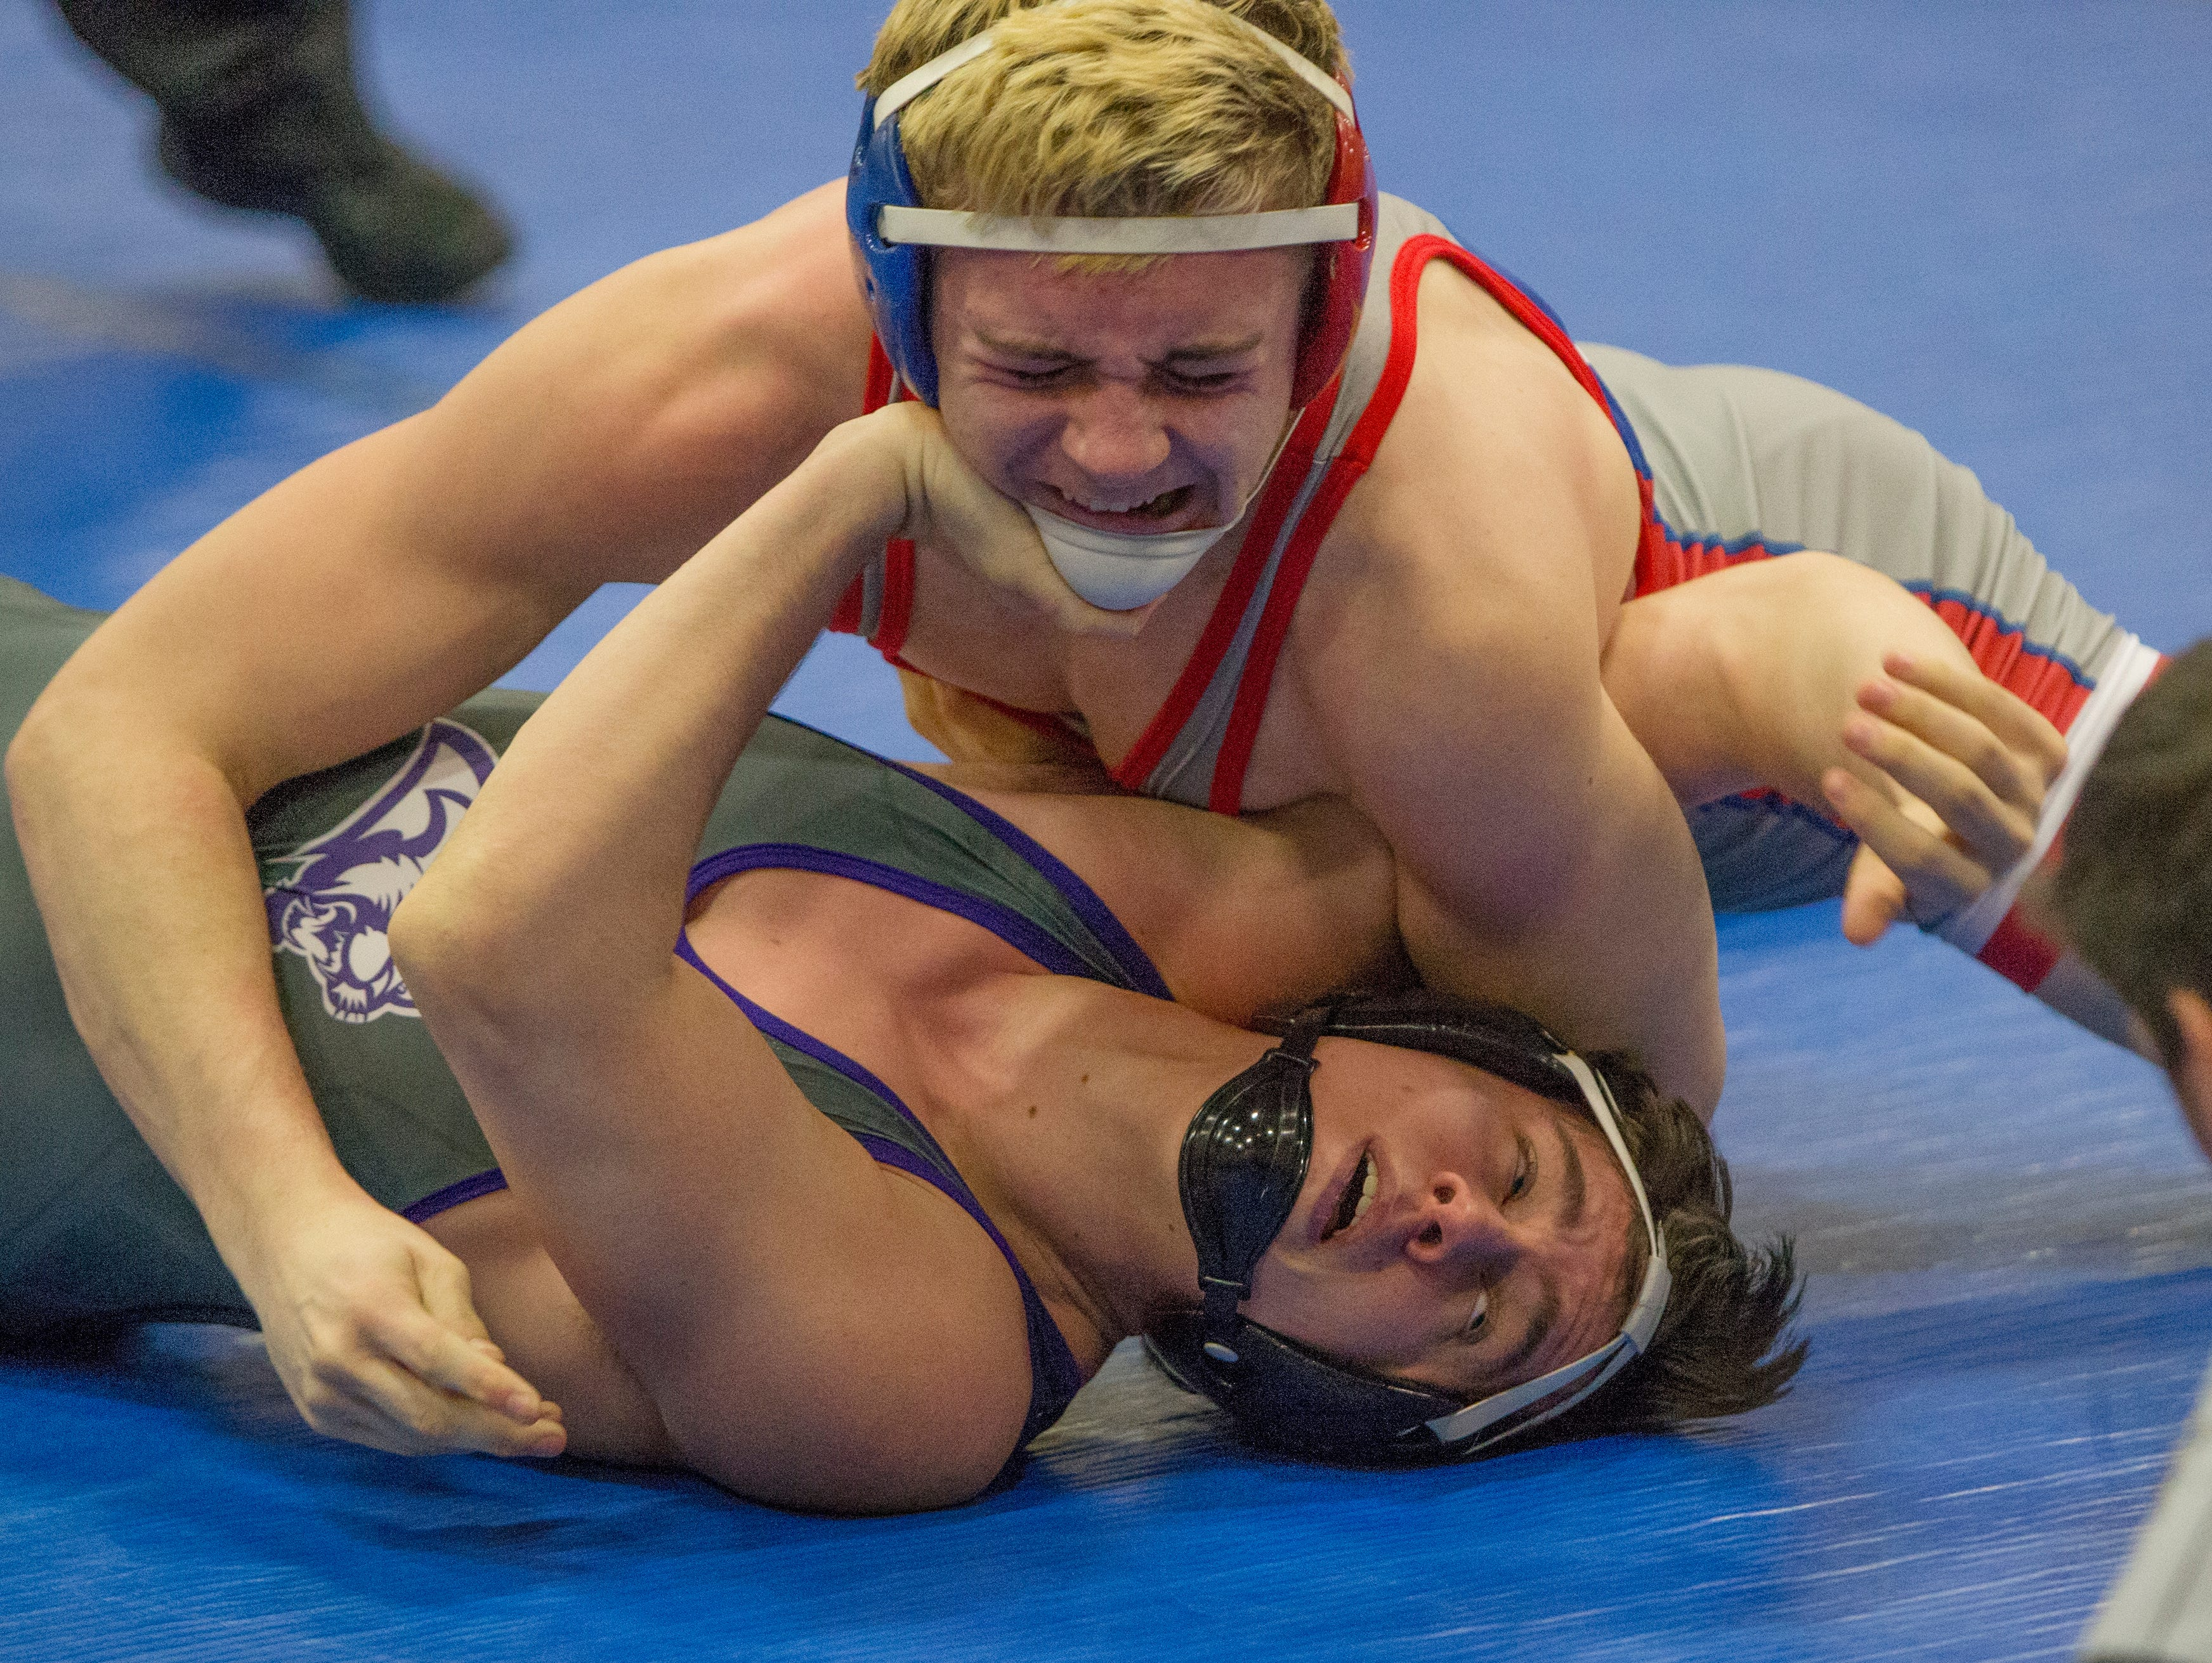 Spanish Springs Cougars Jacob Dye, bottom, wrestles Reno Huskies Devyn Cox in the 160-pound weight class on Wednesday at Reno High School. Dye won by pin.